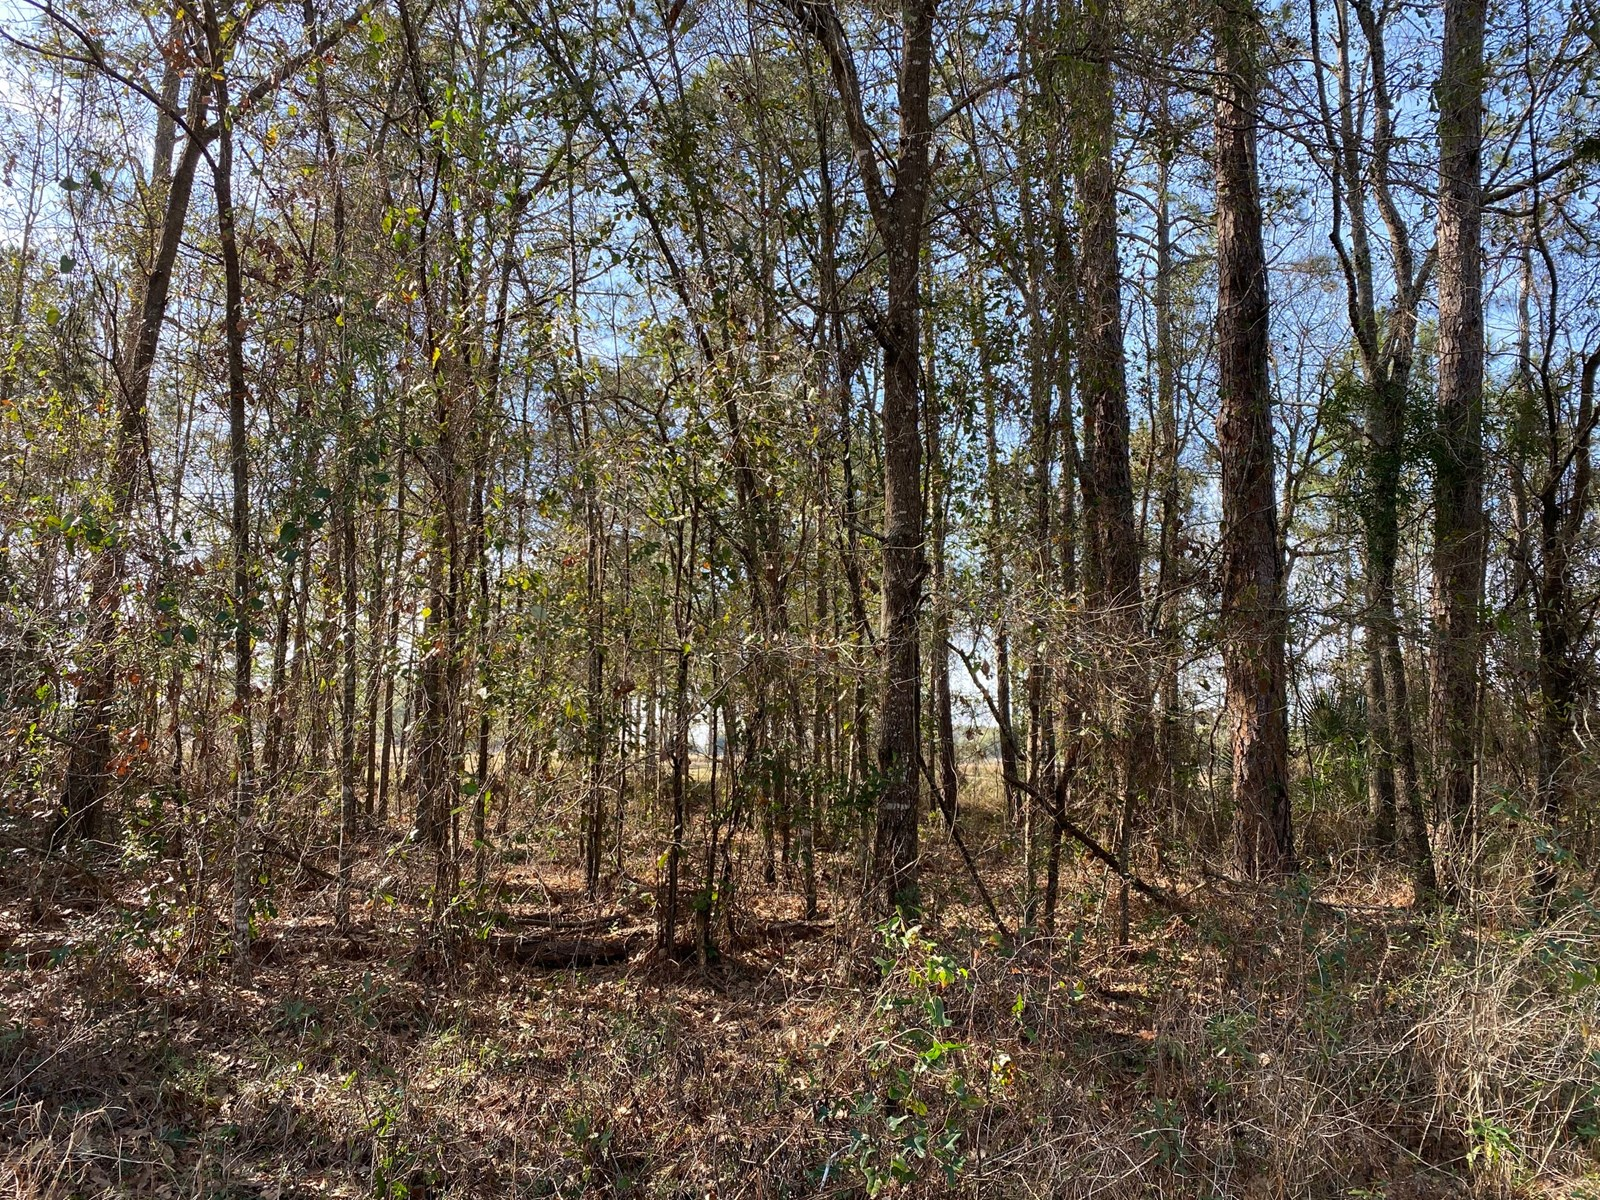 LOT 17 & 18 SUWANNEE BREEZE SUBDIVISION LIVE OAK FL